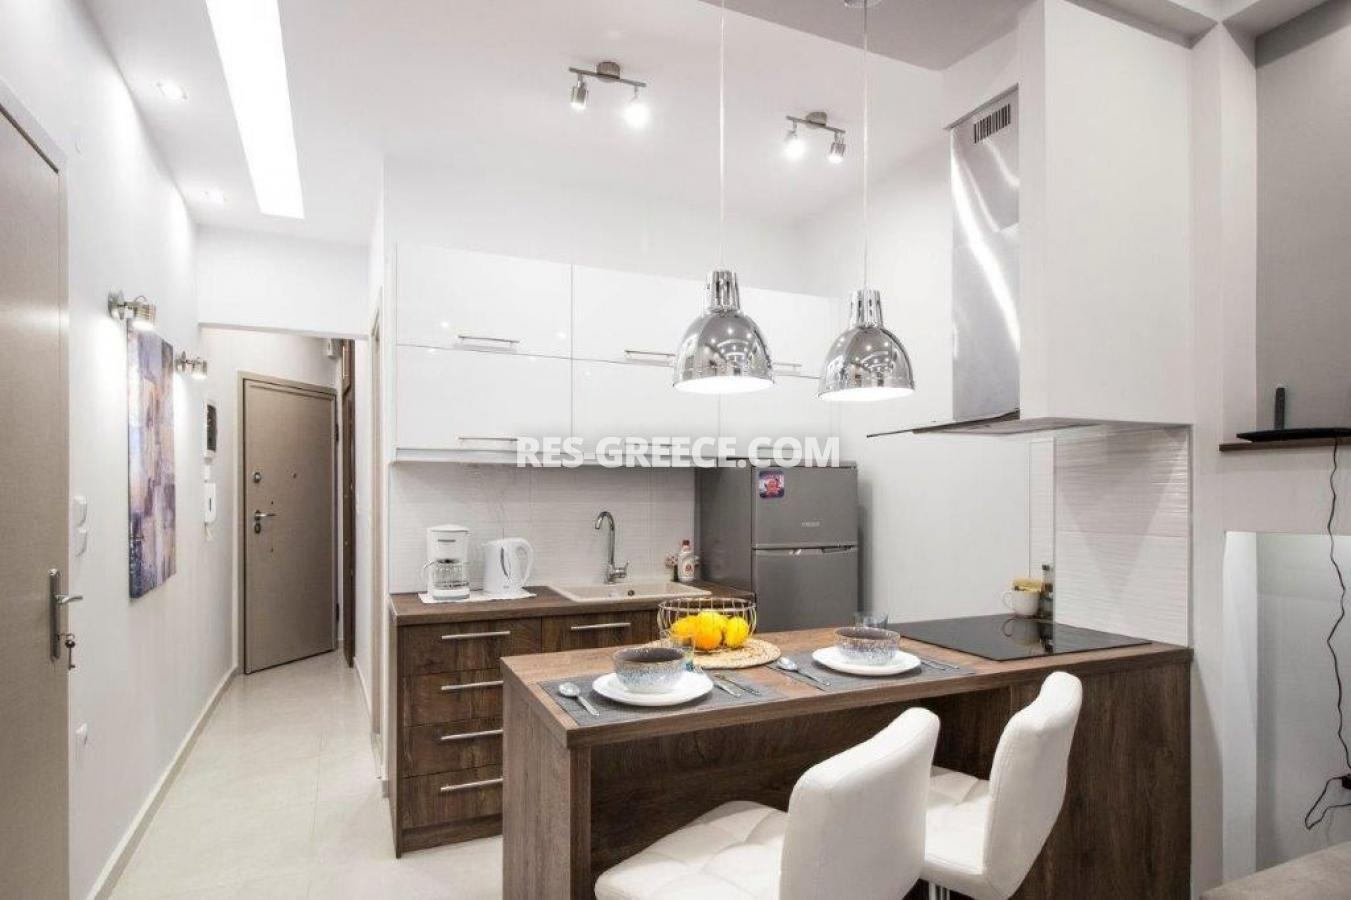 Germanou, Central Macedonia, Greece - apartments in Thessaloniki center for residence or long-term rent - Photo 8